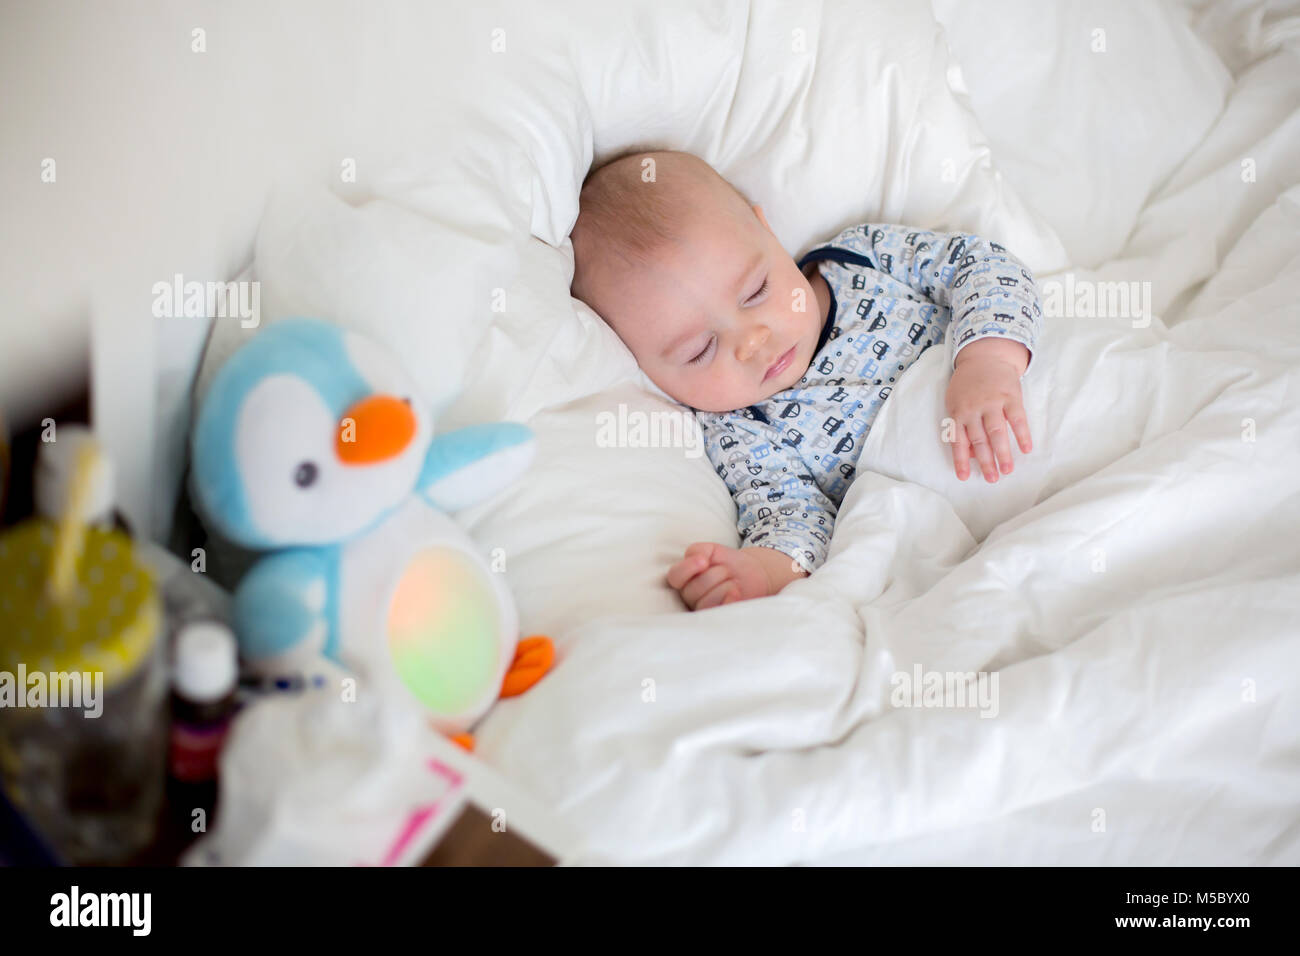 Sick chidl, bab boy lying in bed with a fever, resting at home - Stock Image